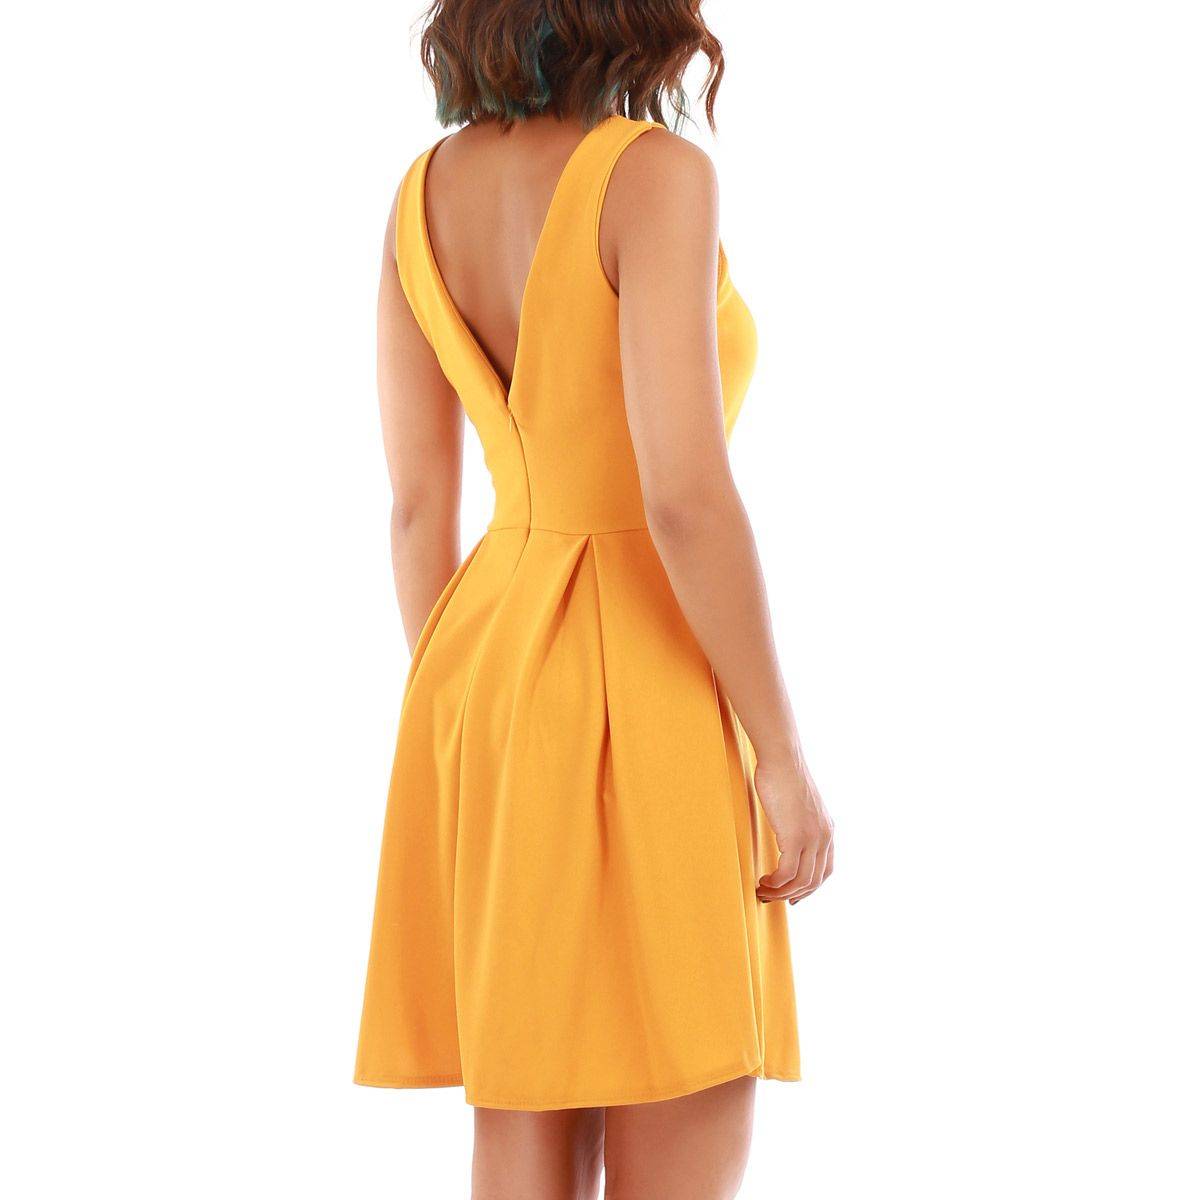 Robe patineuse jaune moutarde